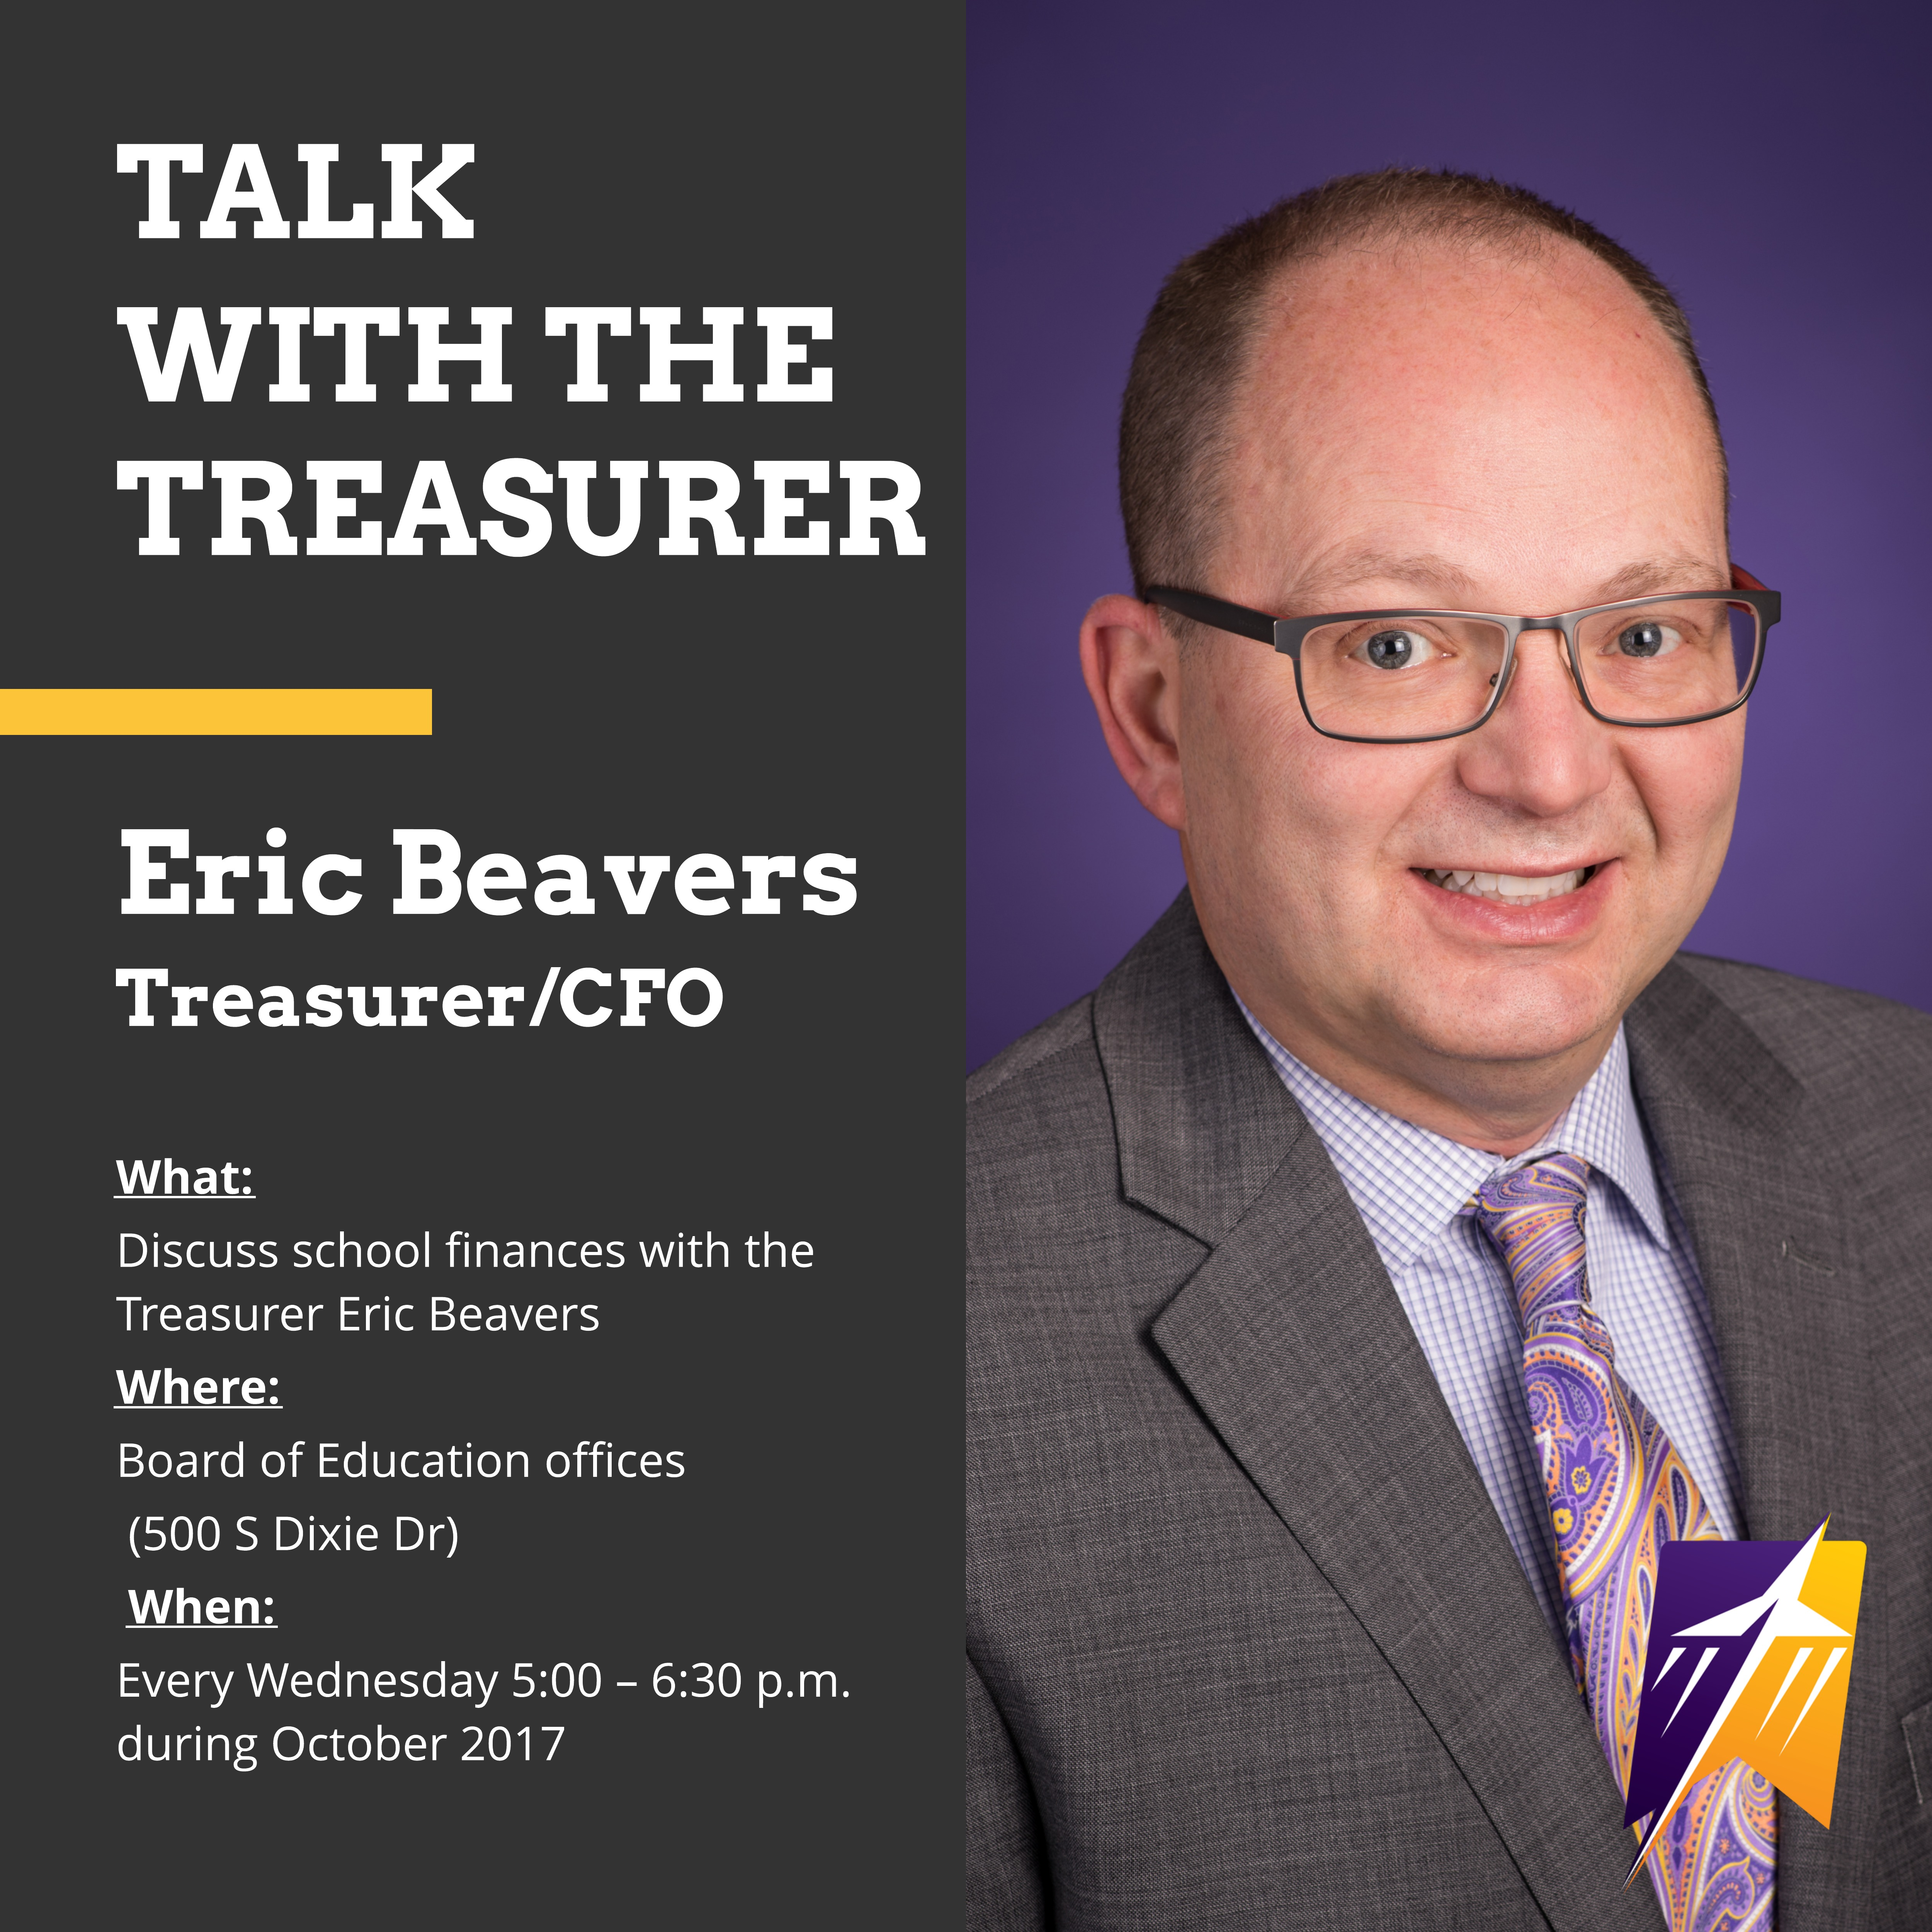 Talk with the Treasurer